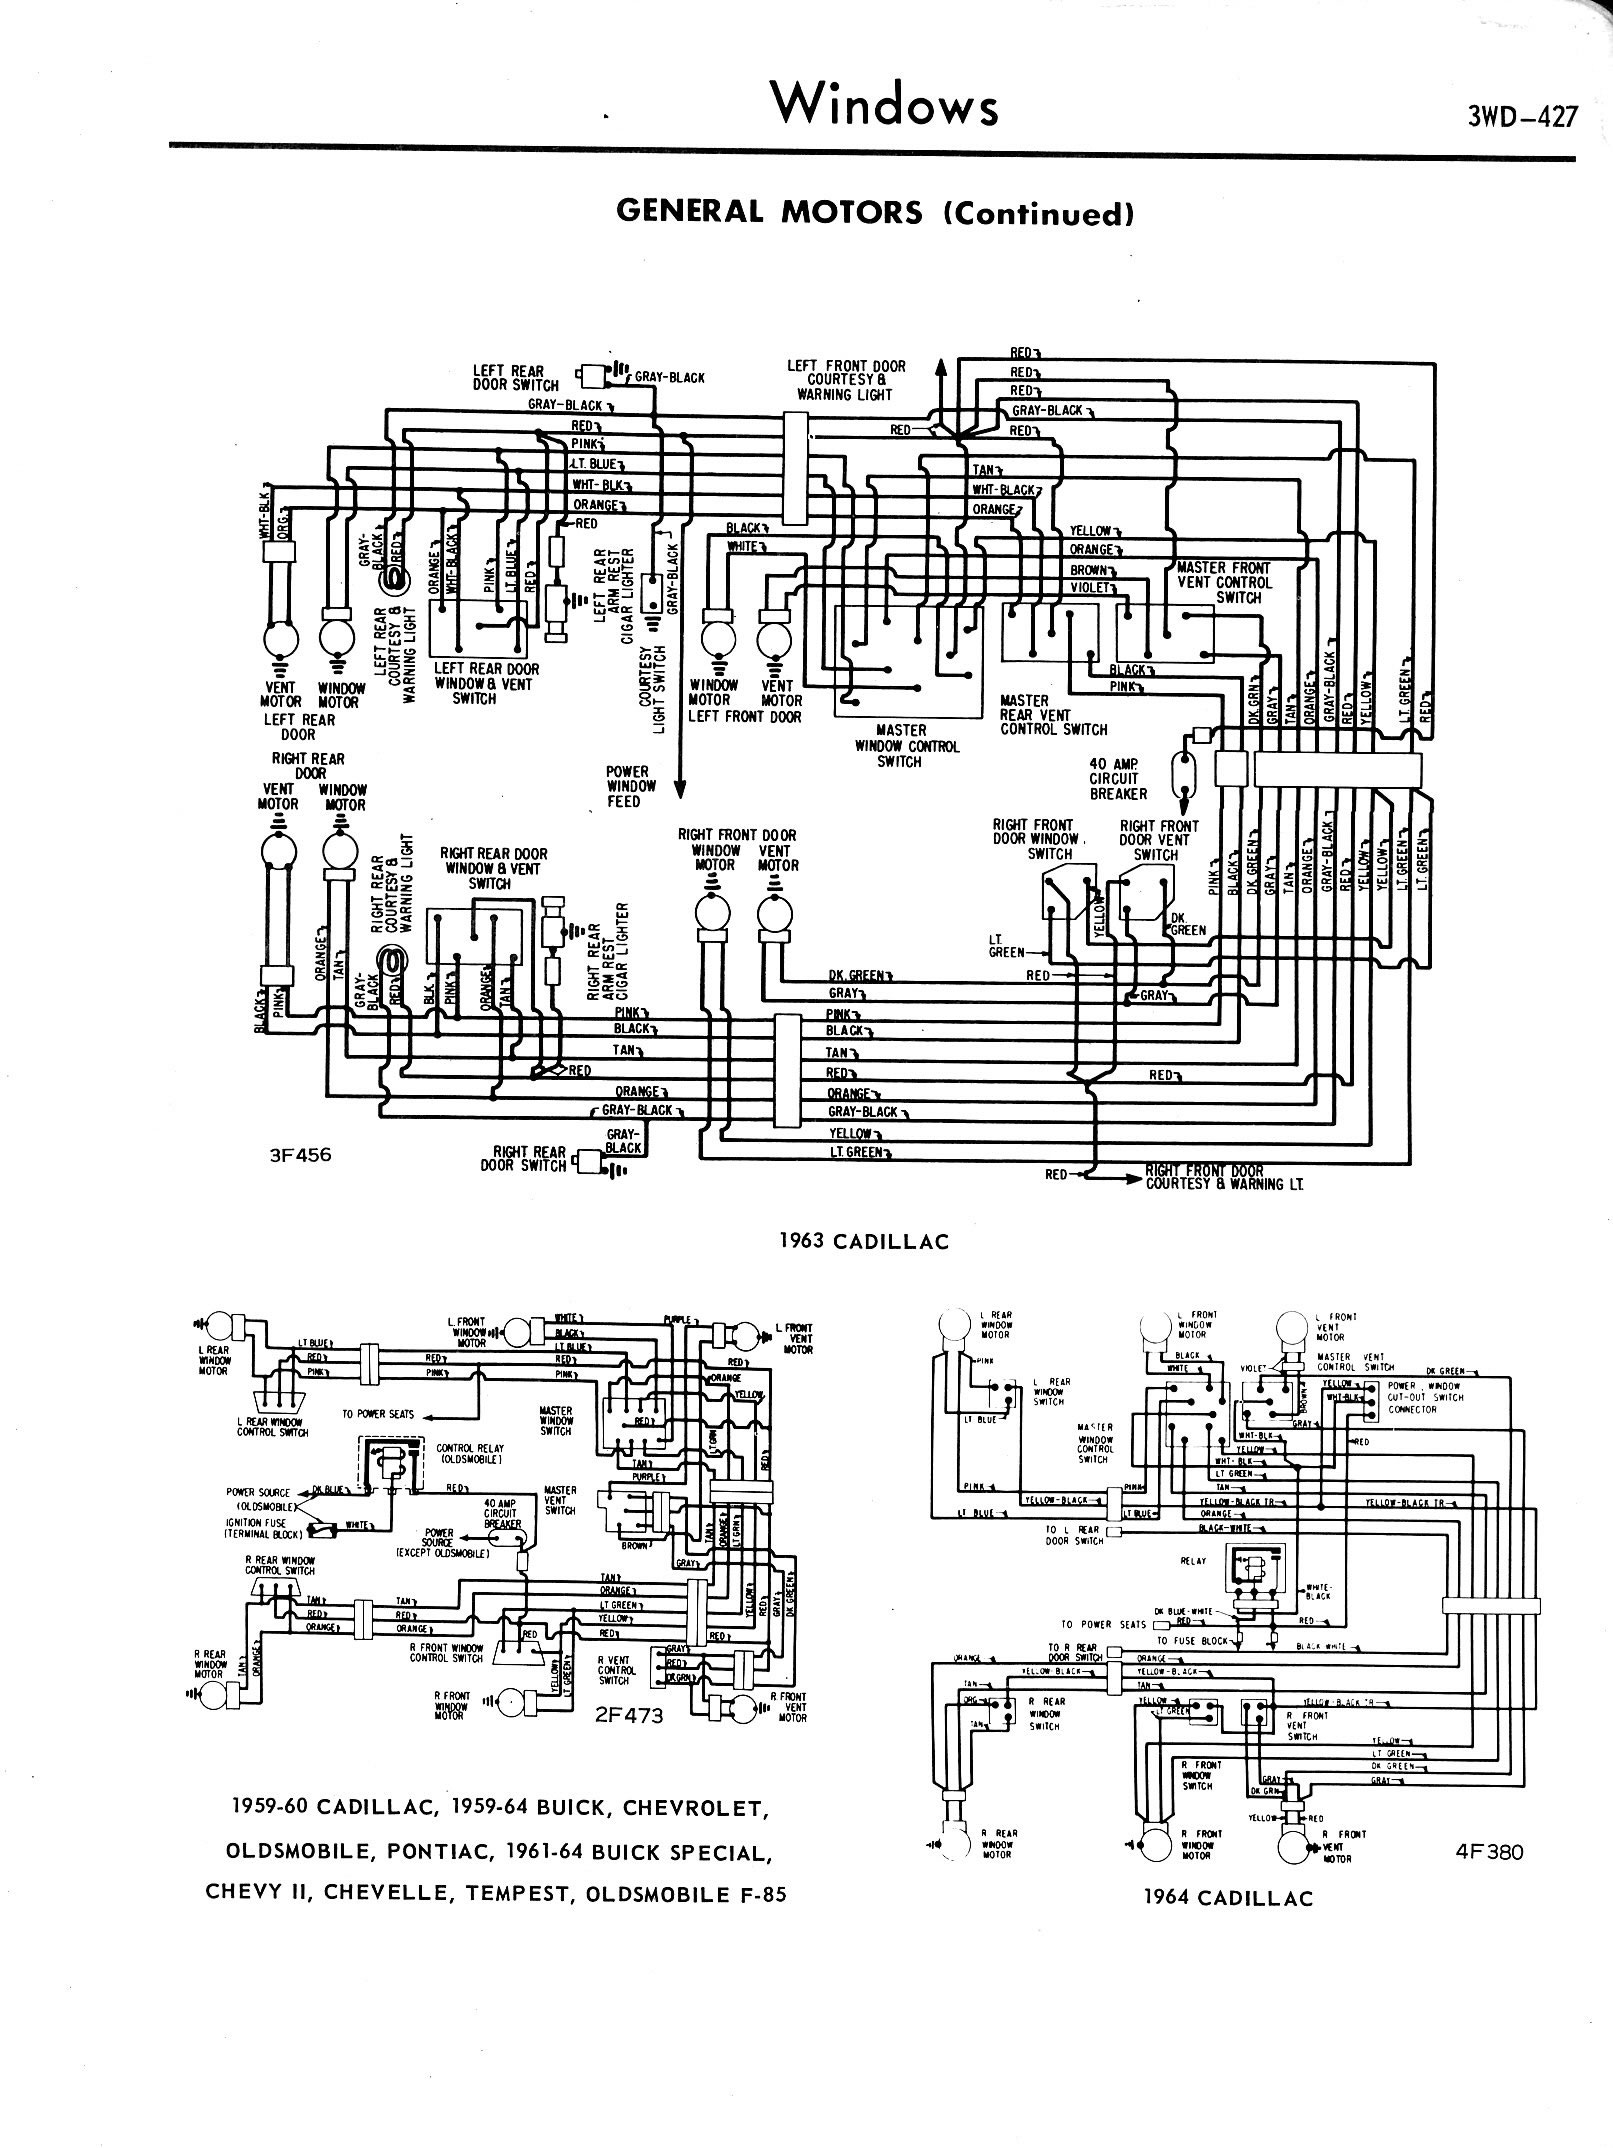 1957-1965 Accessory Wiring Diagrams / 3WD-427.jpg